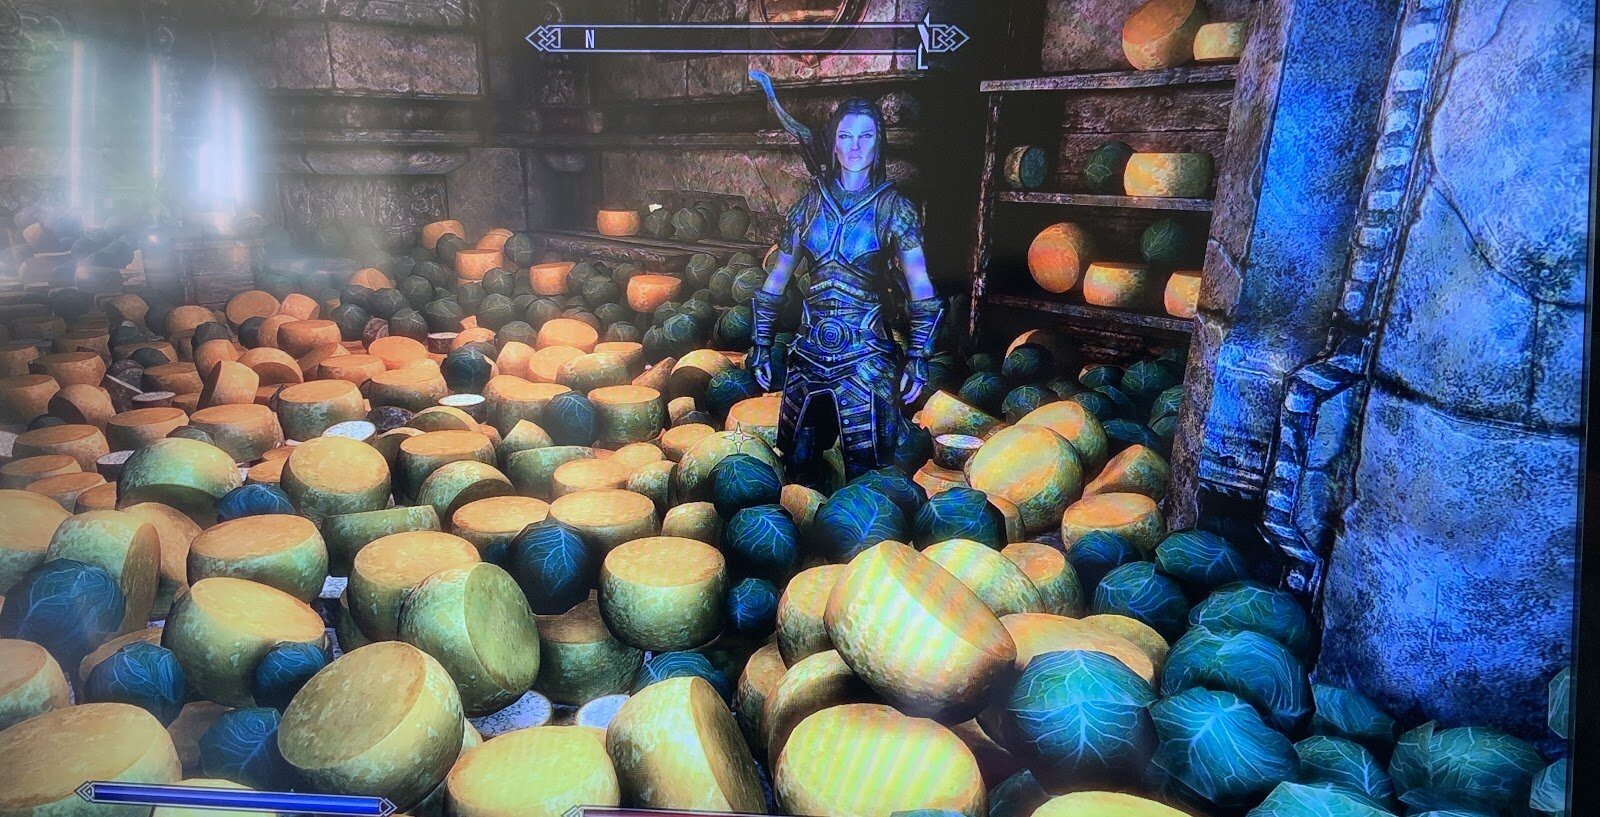 A small portion of Rose's extensive Skyrim cheese and cabbage collection.